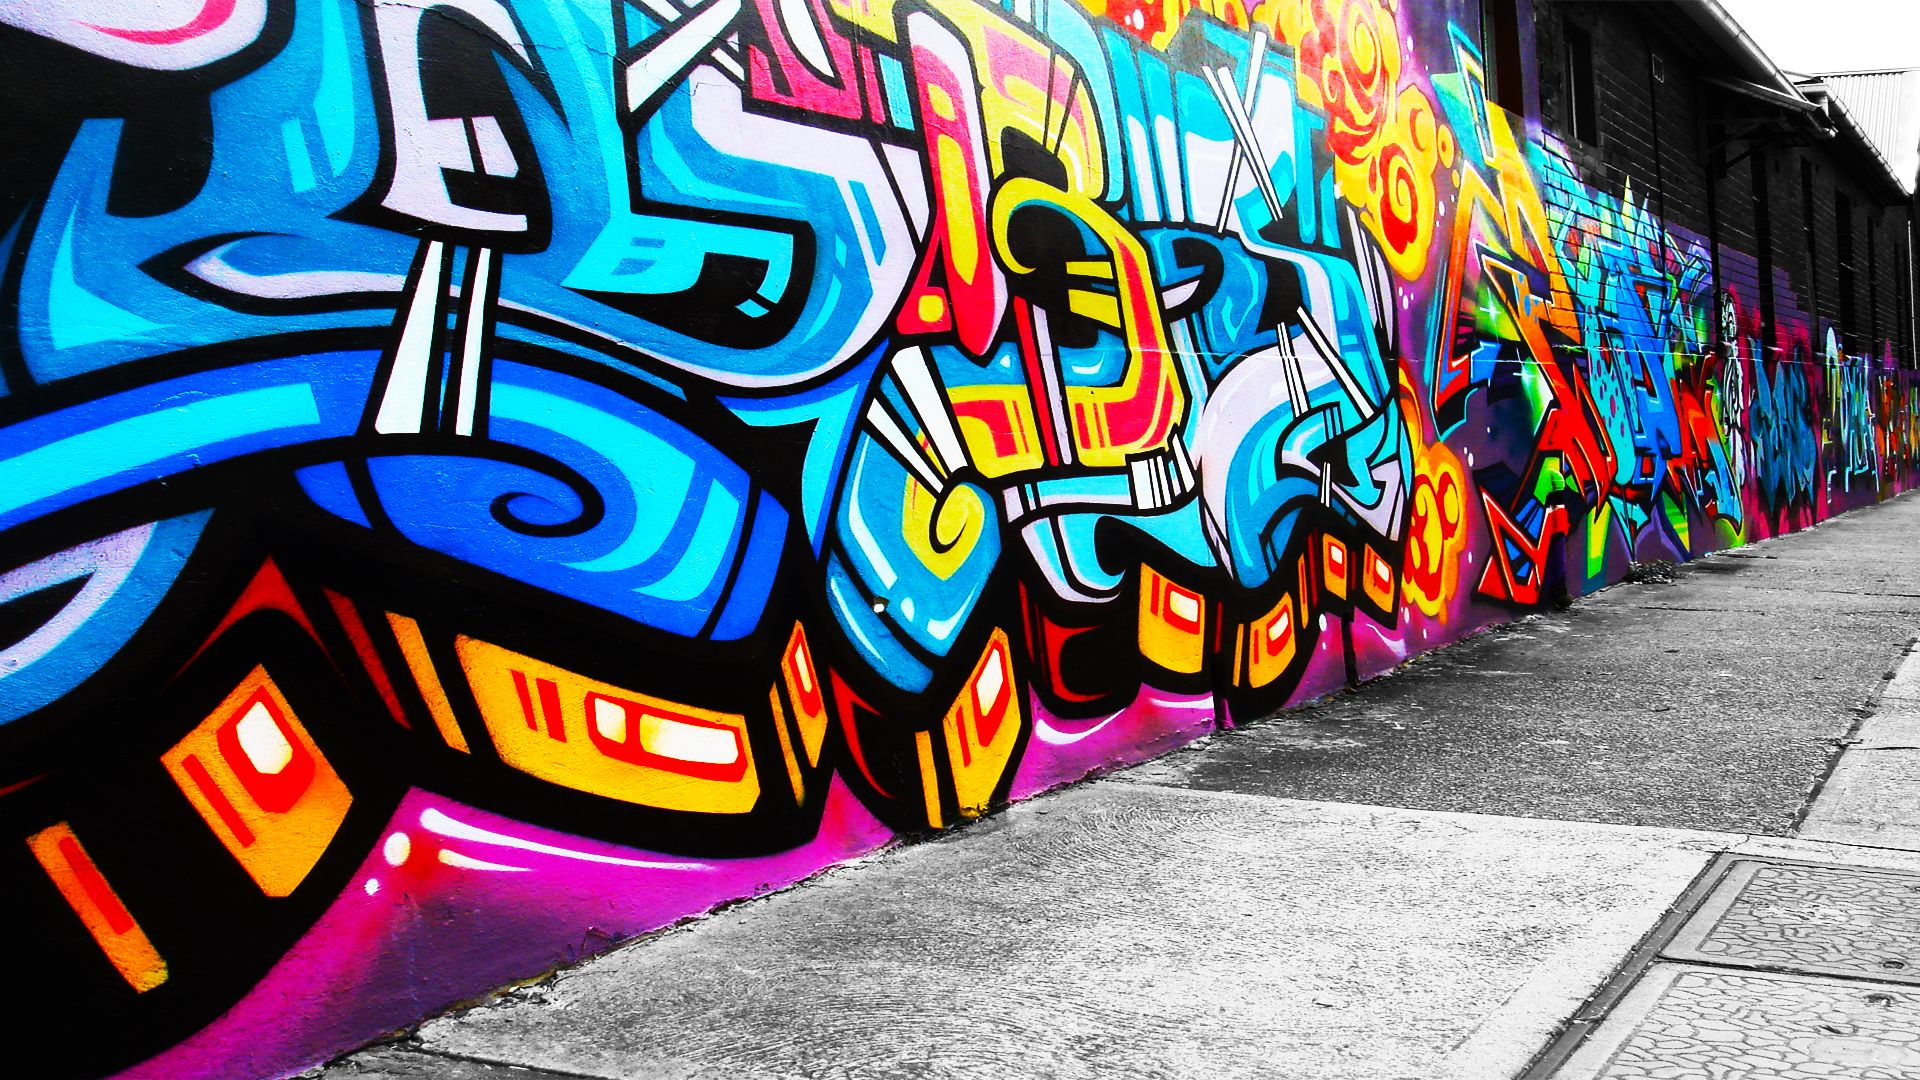 Graffiti Art Graffiti Wall Art Street Graffiti Graffiti Wallpaper